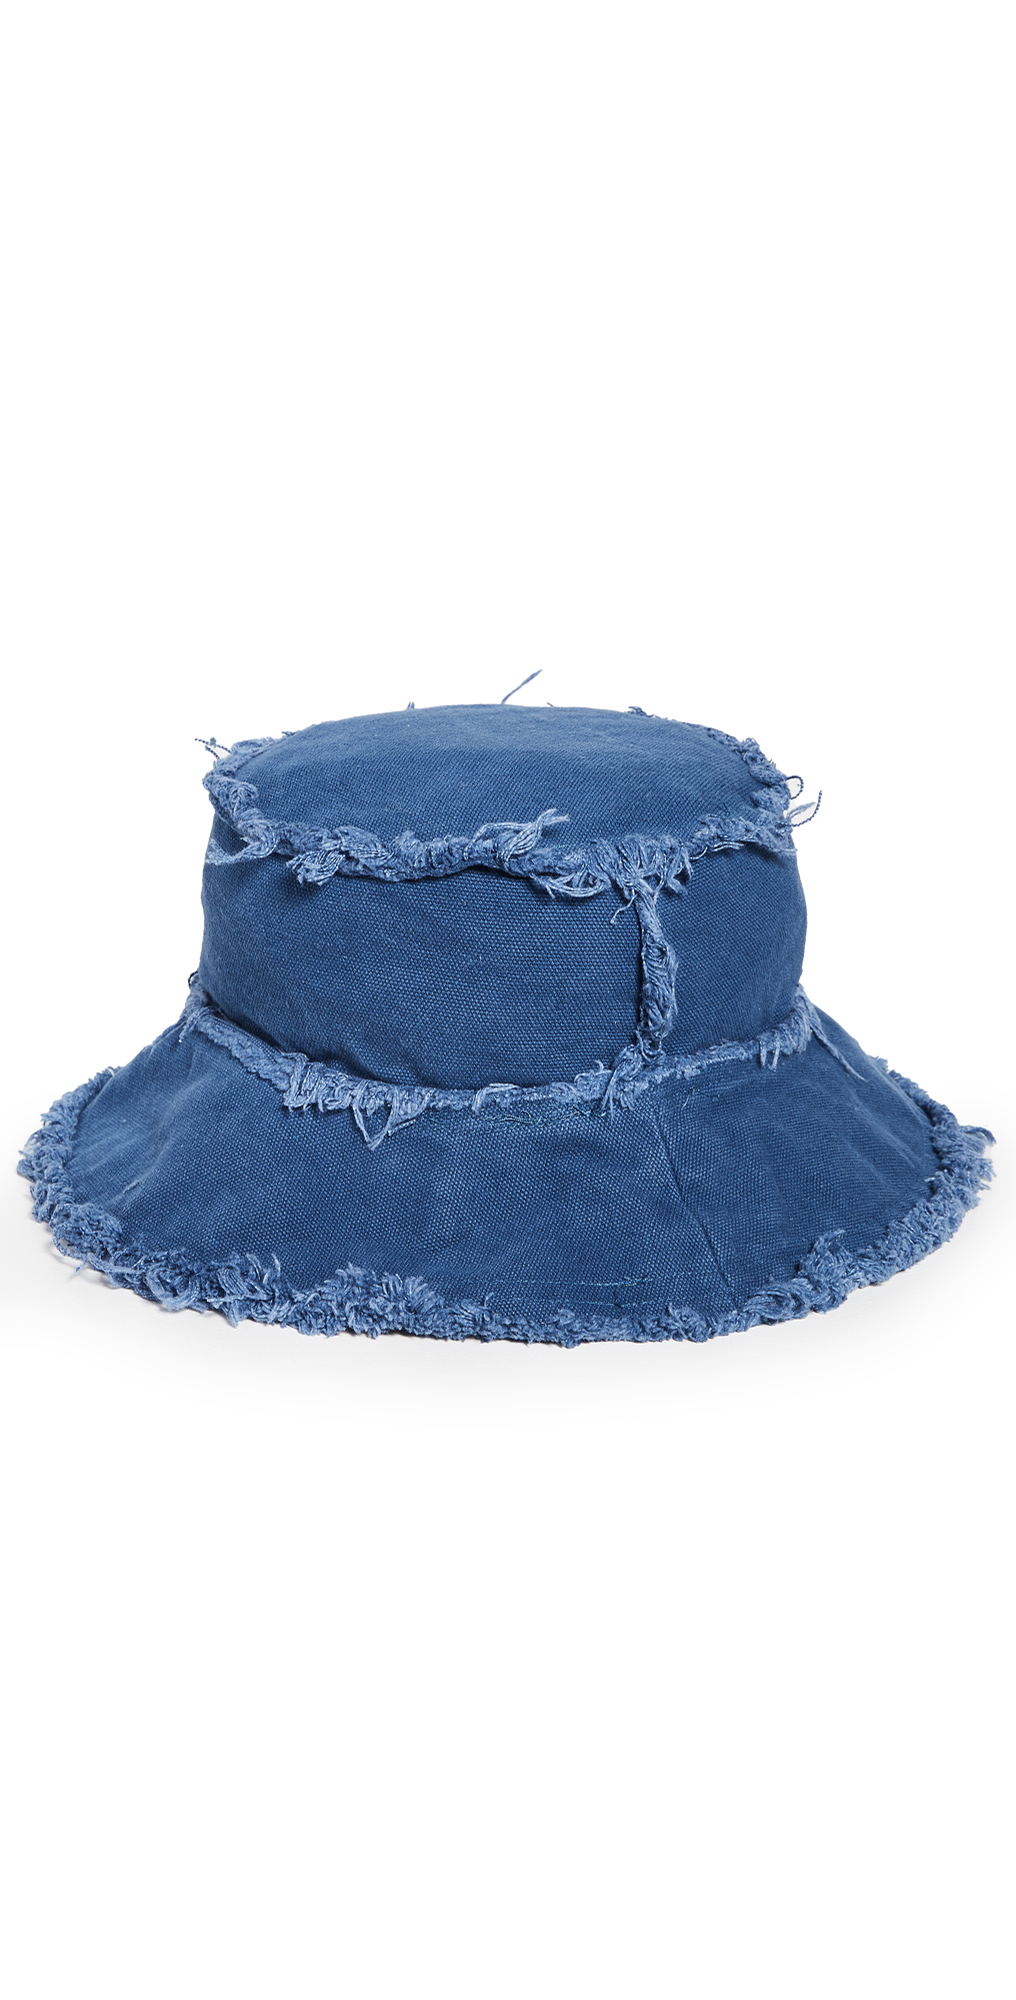 Cotton Canvas Bucket Hat with Frayed Edges